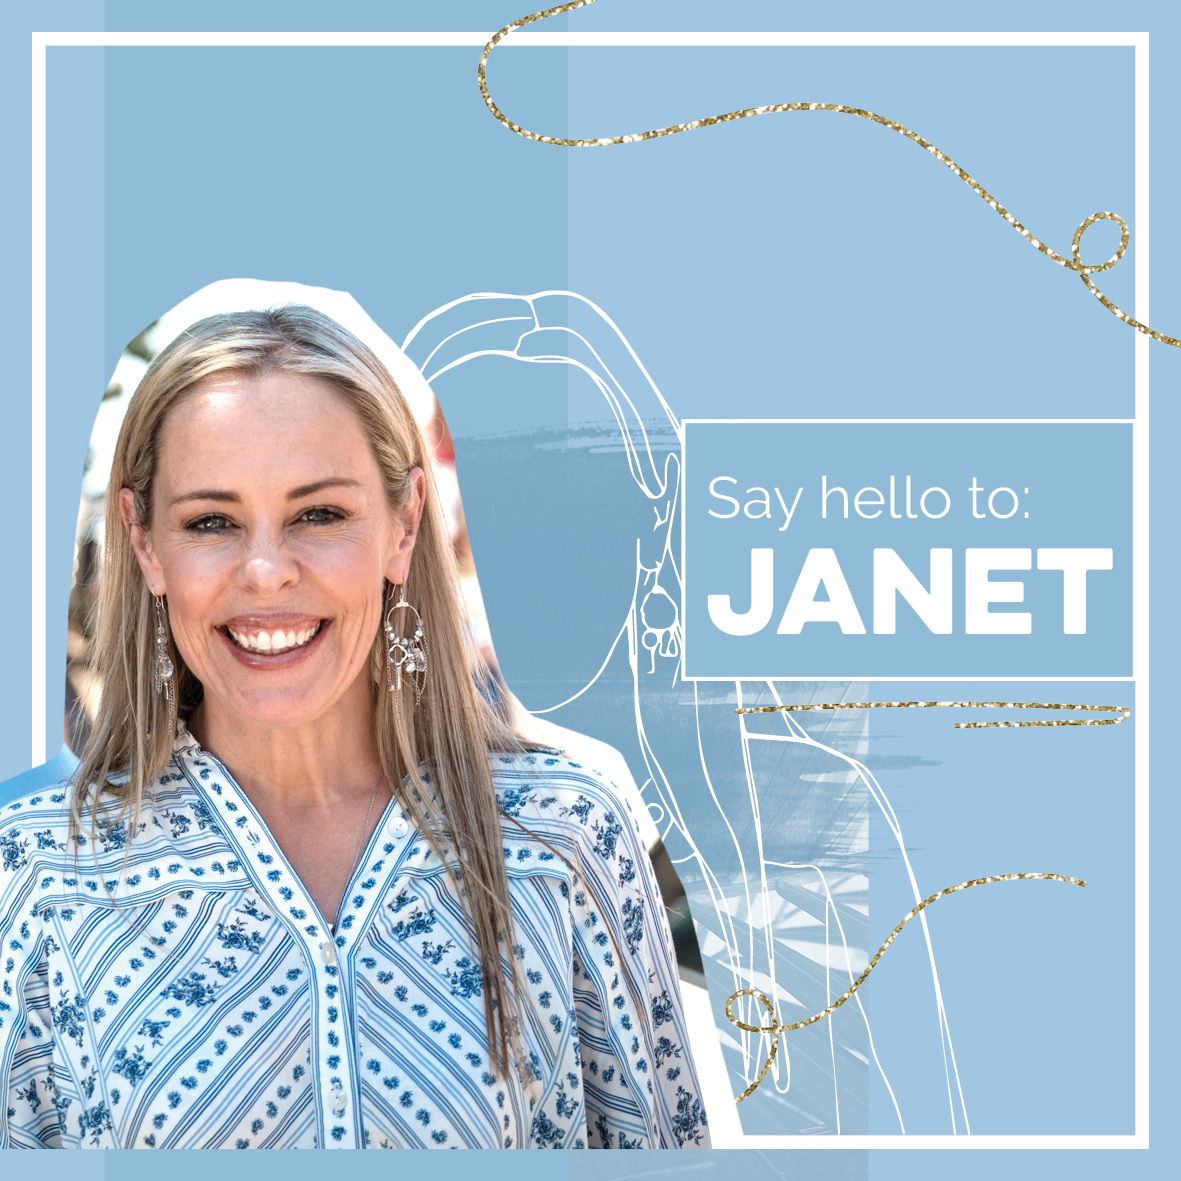 Janet Boland, Founding Director - Janet is a senior marketer with significant experience working on some of Australia's leading FMCG and alcohol brands.She holds a Master Of Business (Marketing) and has also worked internationally in media strategy planning. Janet founded Passionfolk in 2014.